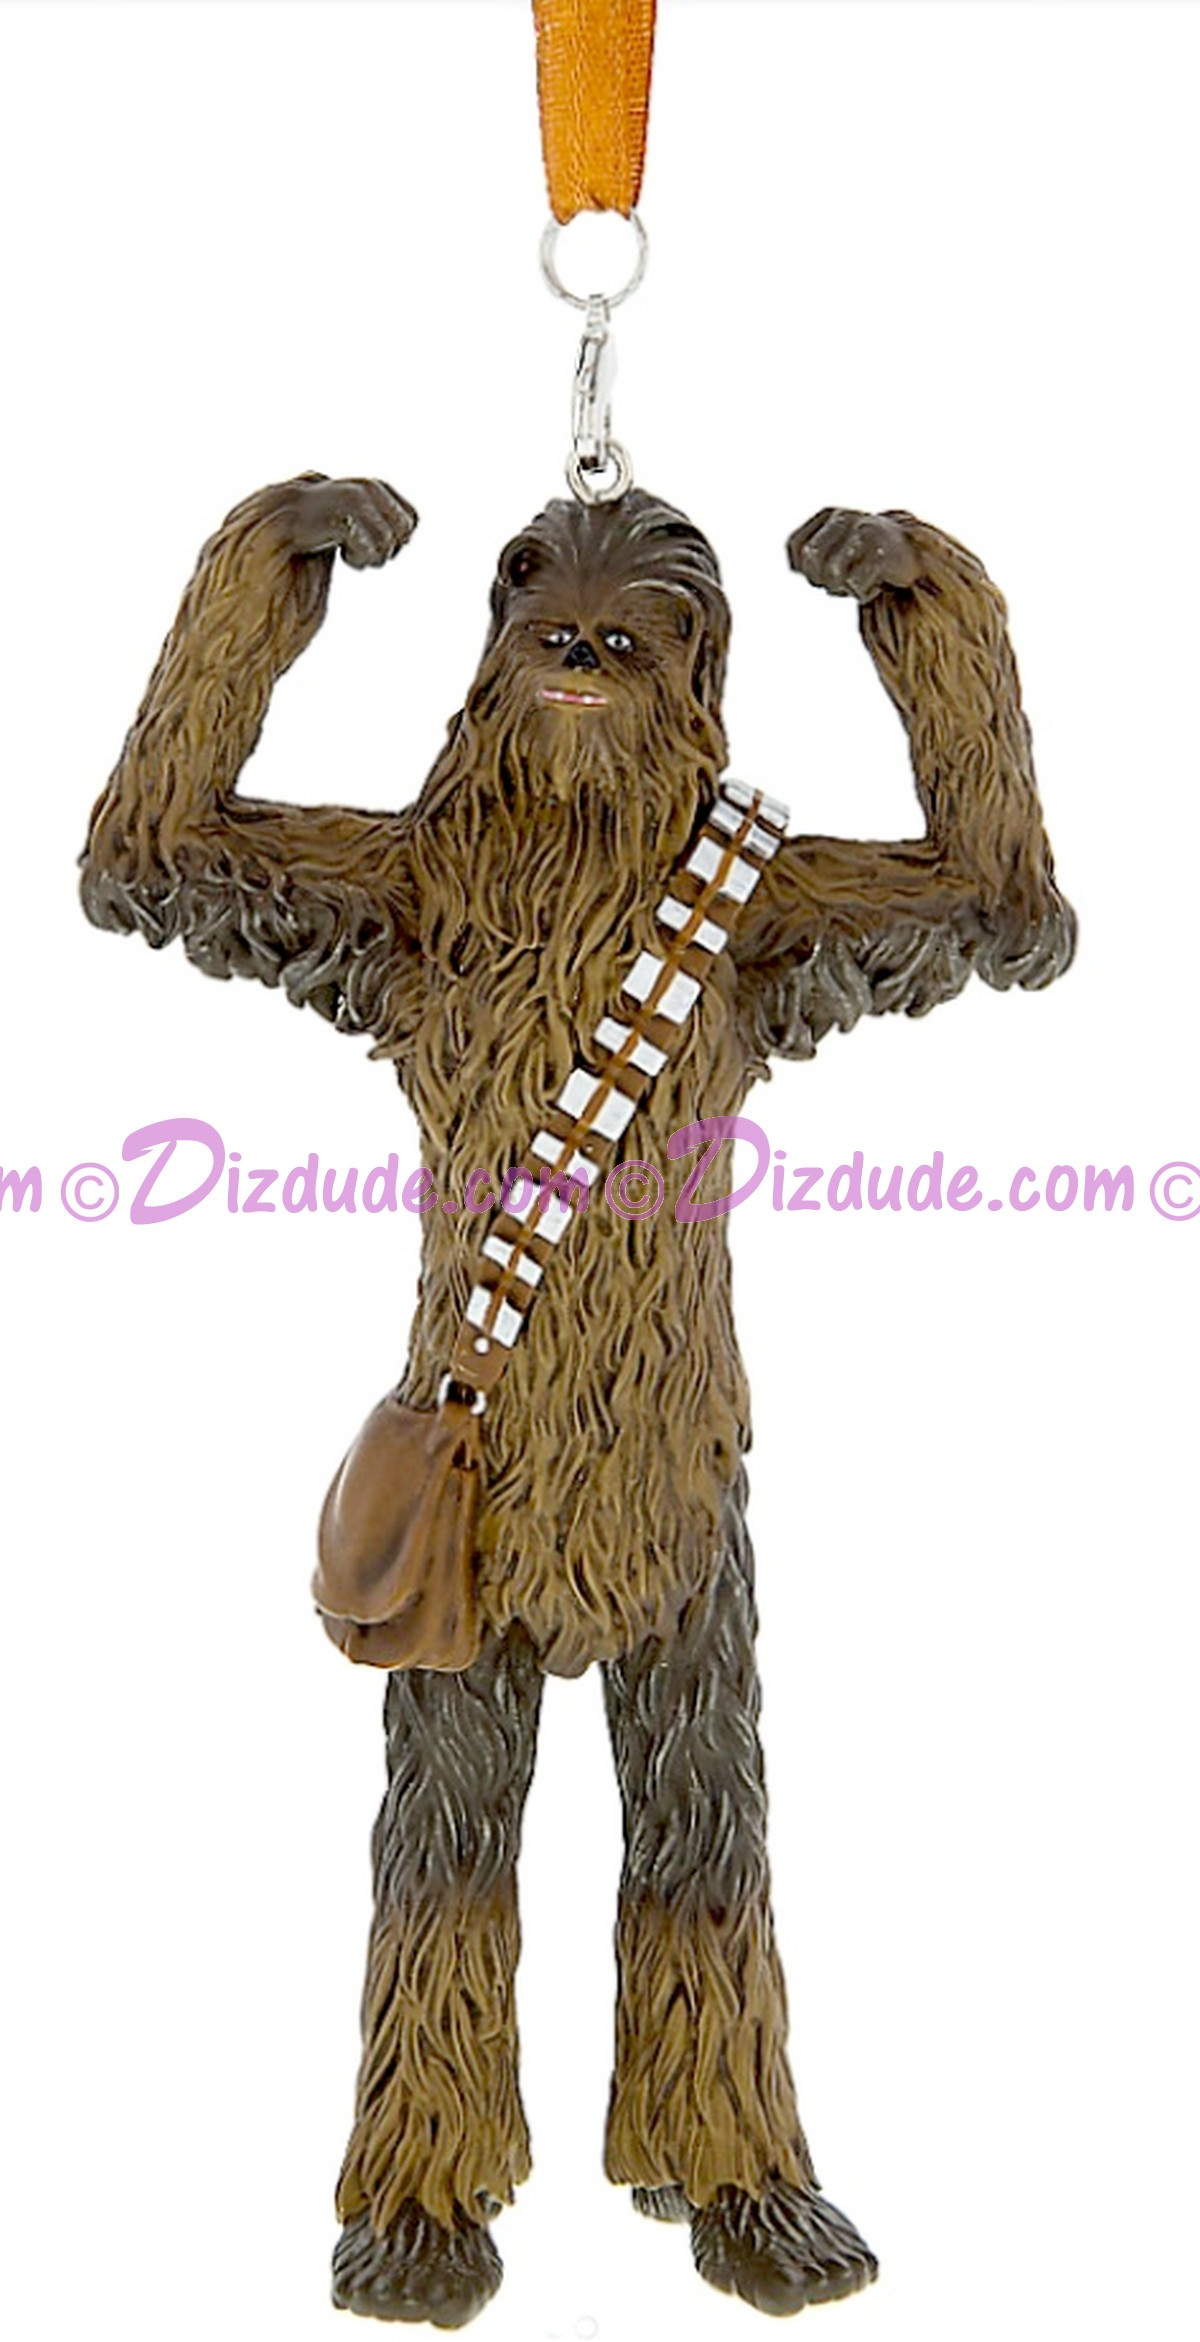 Chewbacca 3D Christmas Ornament - Disney Star Wars: The Force Awakens © Dizdude.com